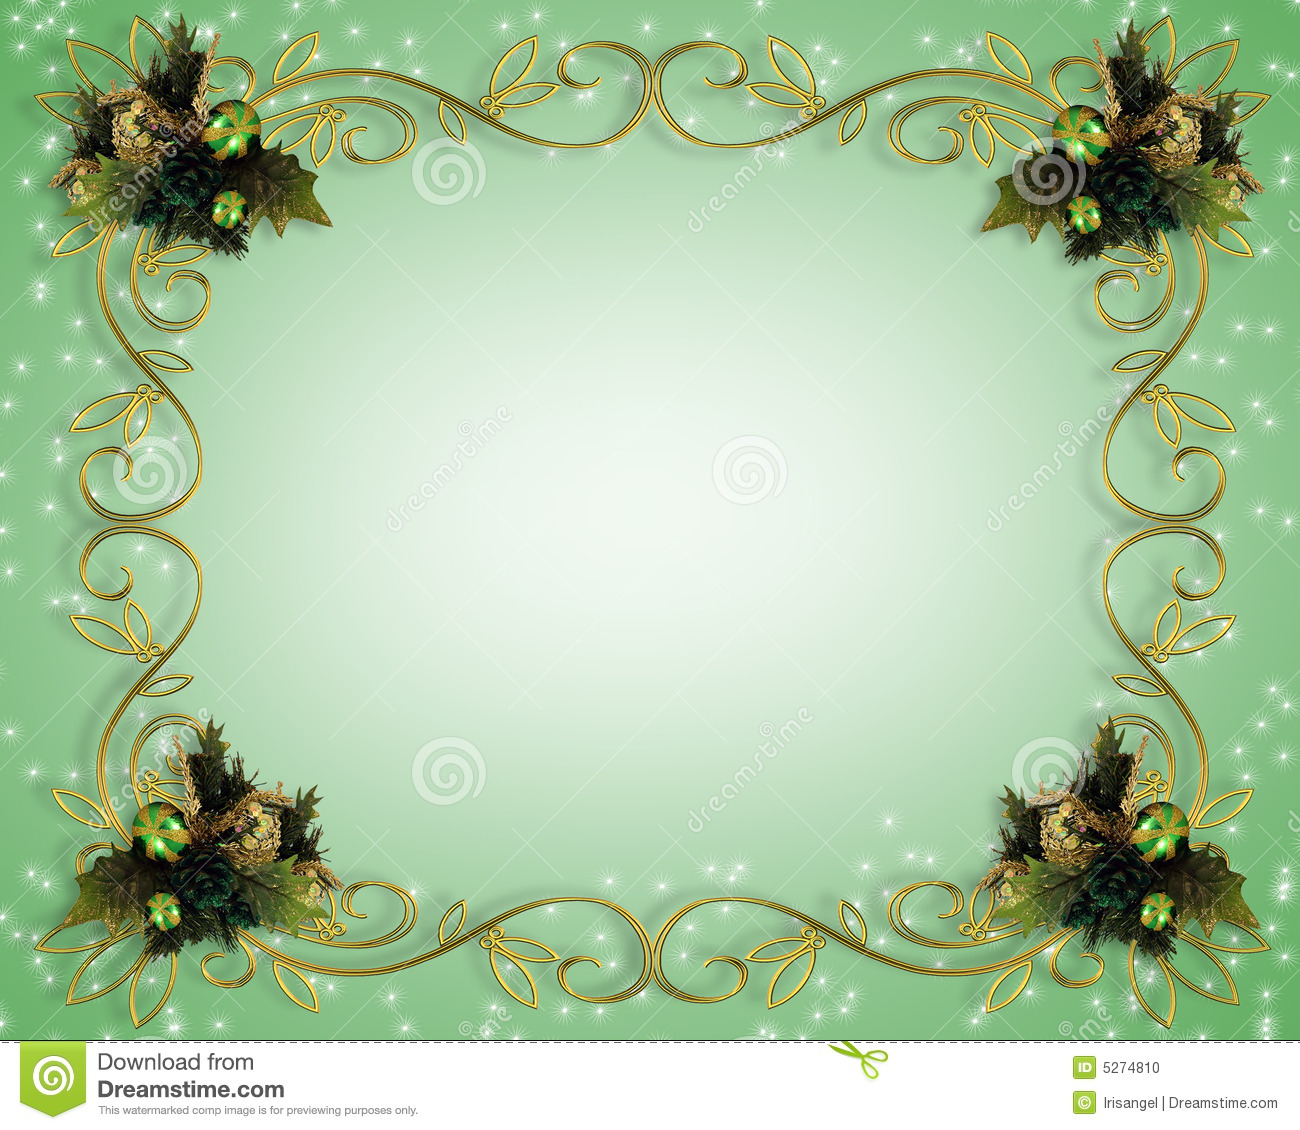 Christmas border frame image and illustration